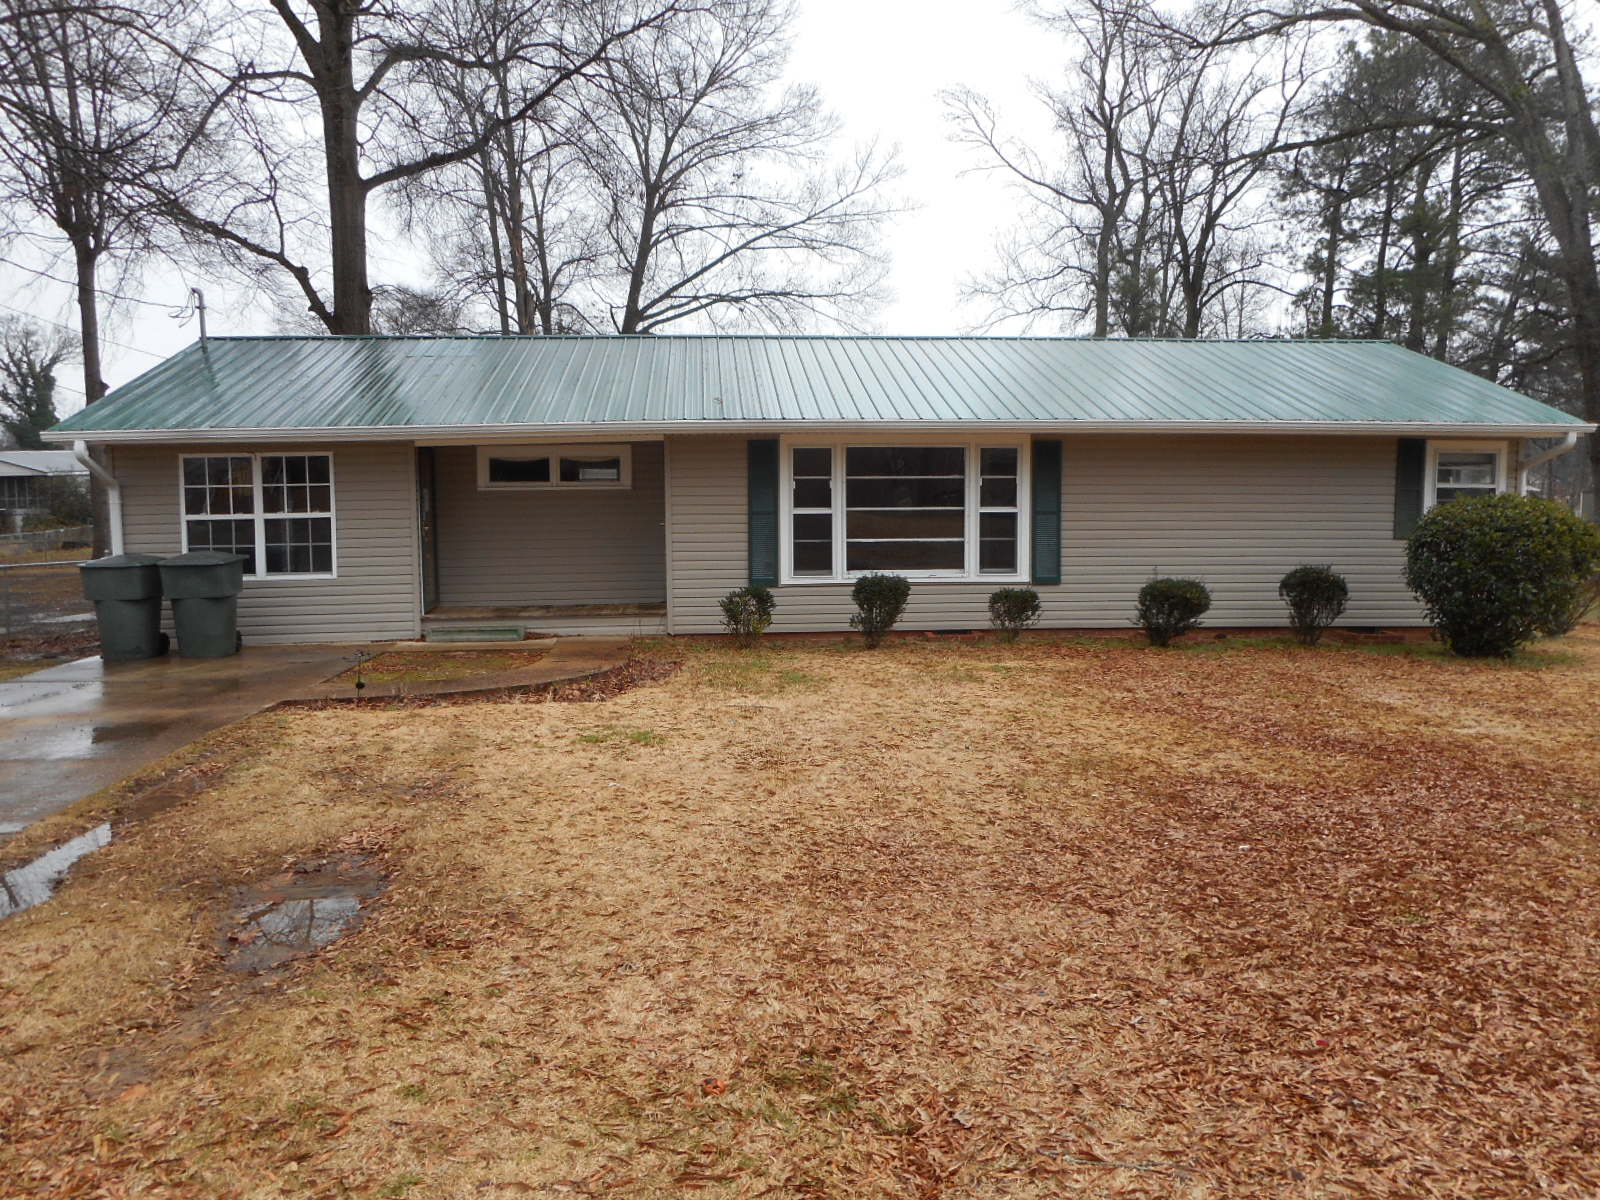 905 GARDEN DRIVE, Scottsboro, Alabama 35768